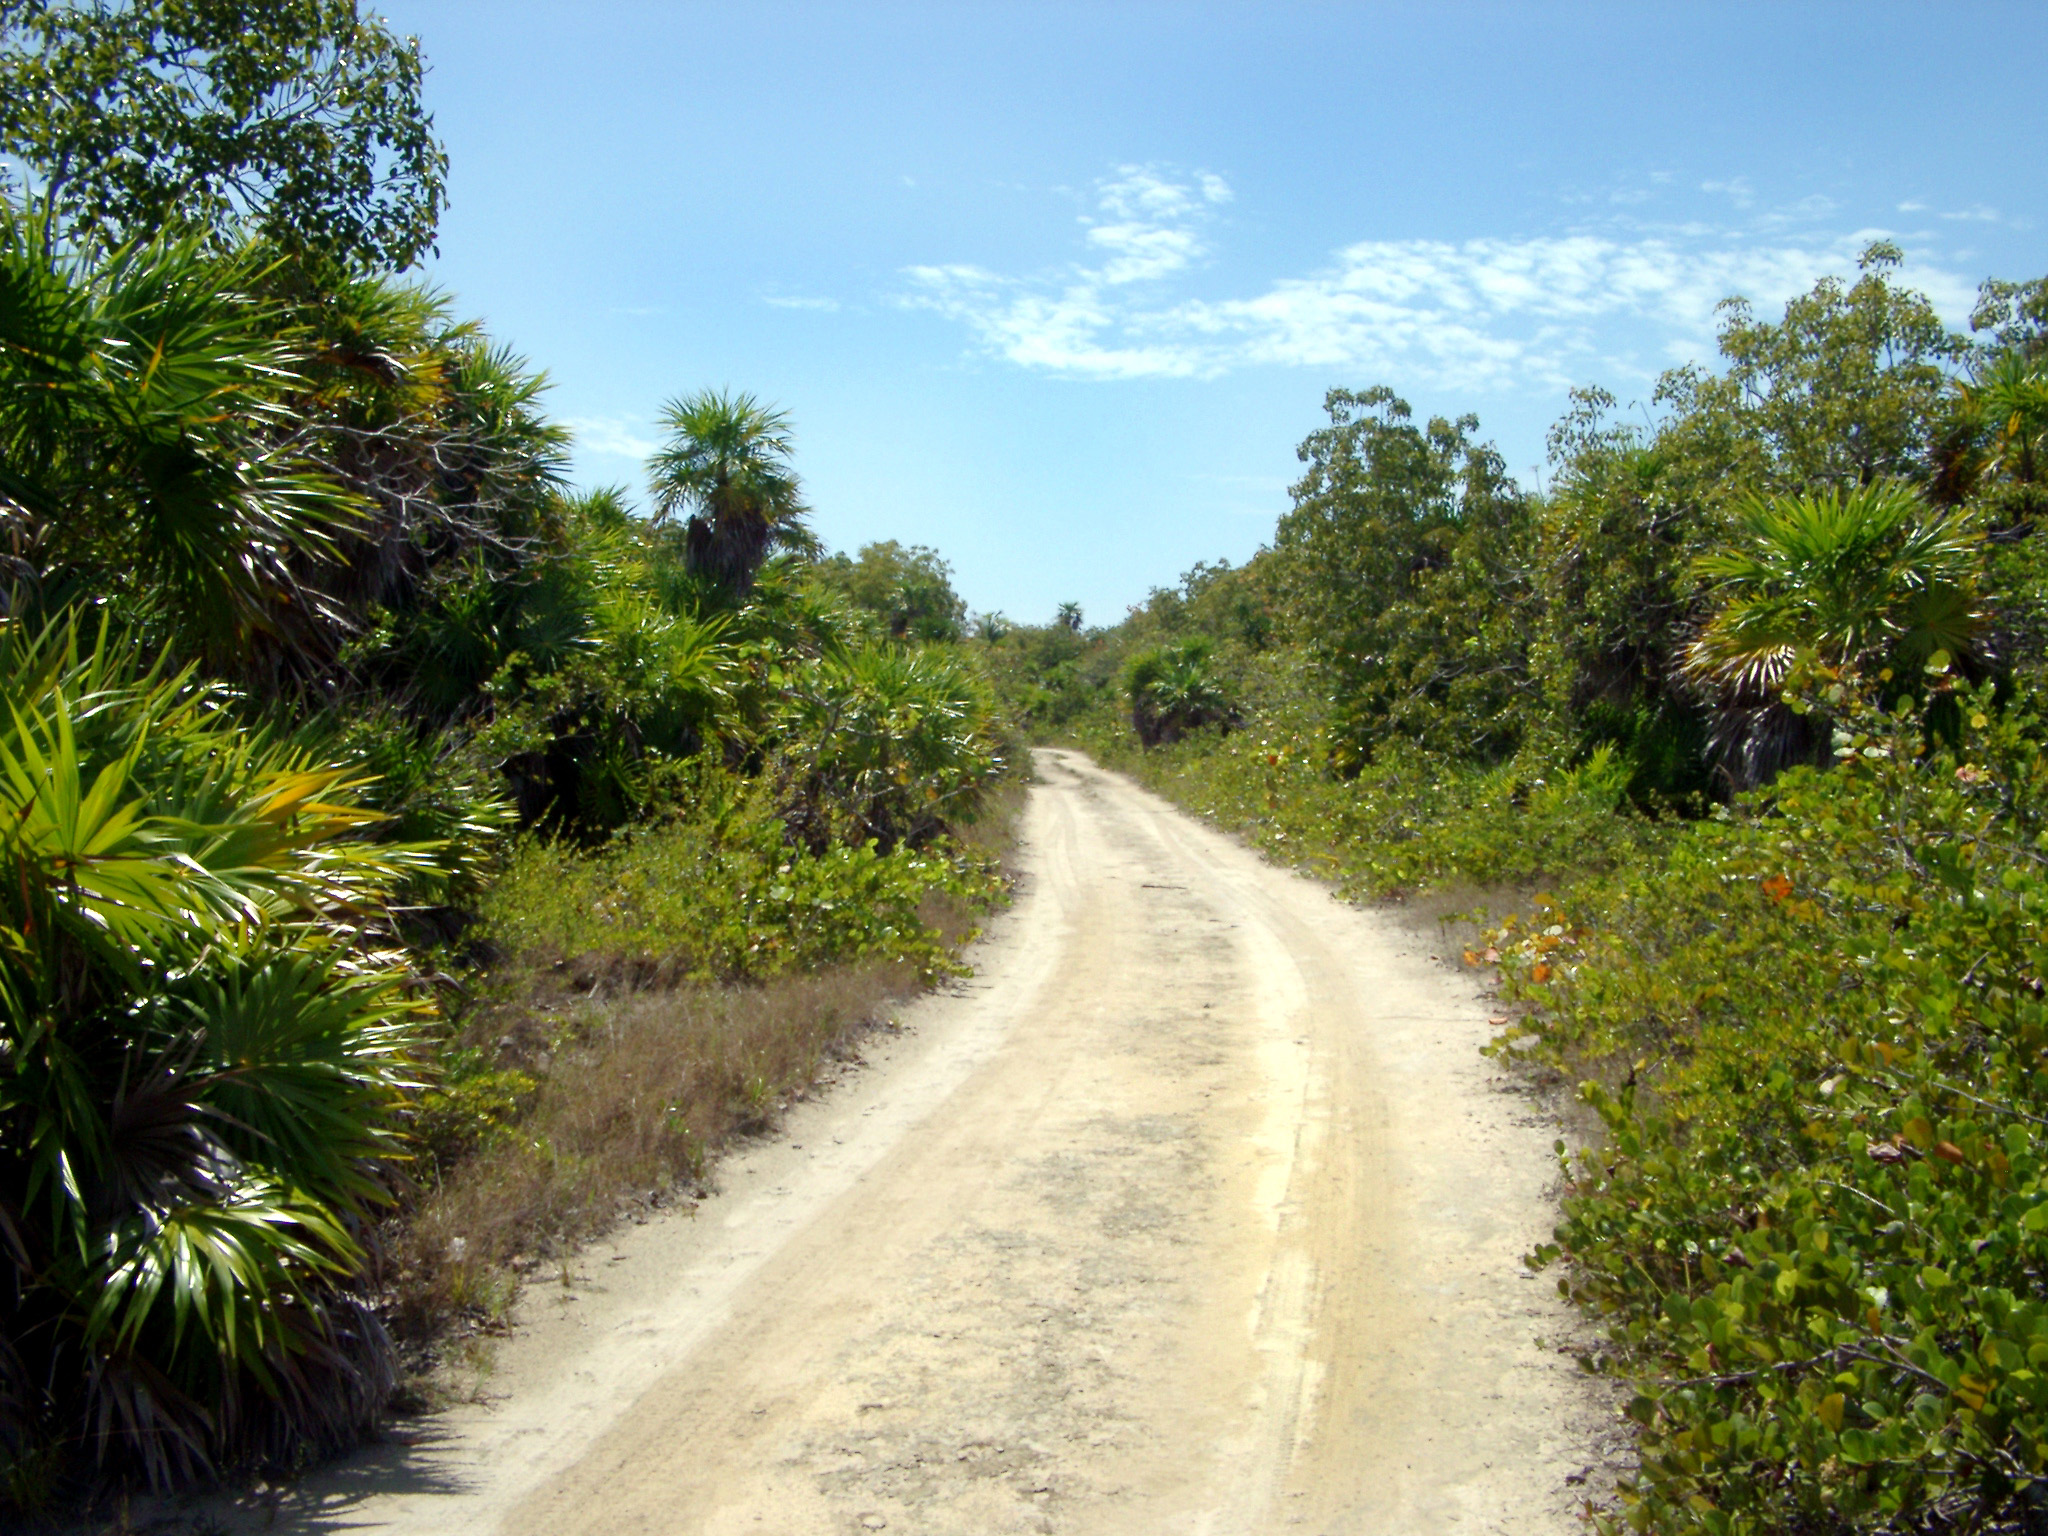 Isolated Dirt Road through Jungle Forest in Punta Allen, Mexico on Sunny Day